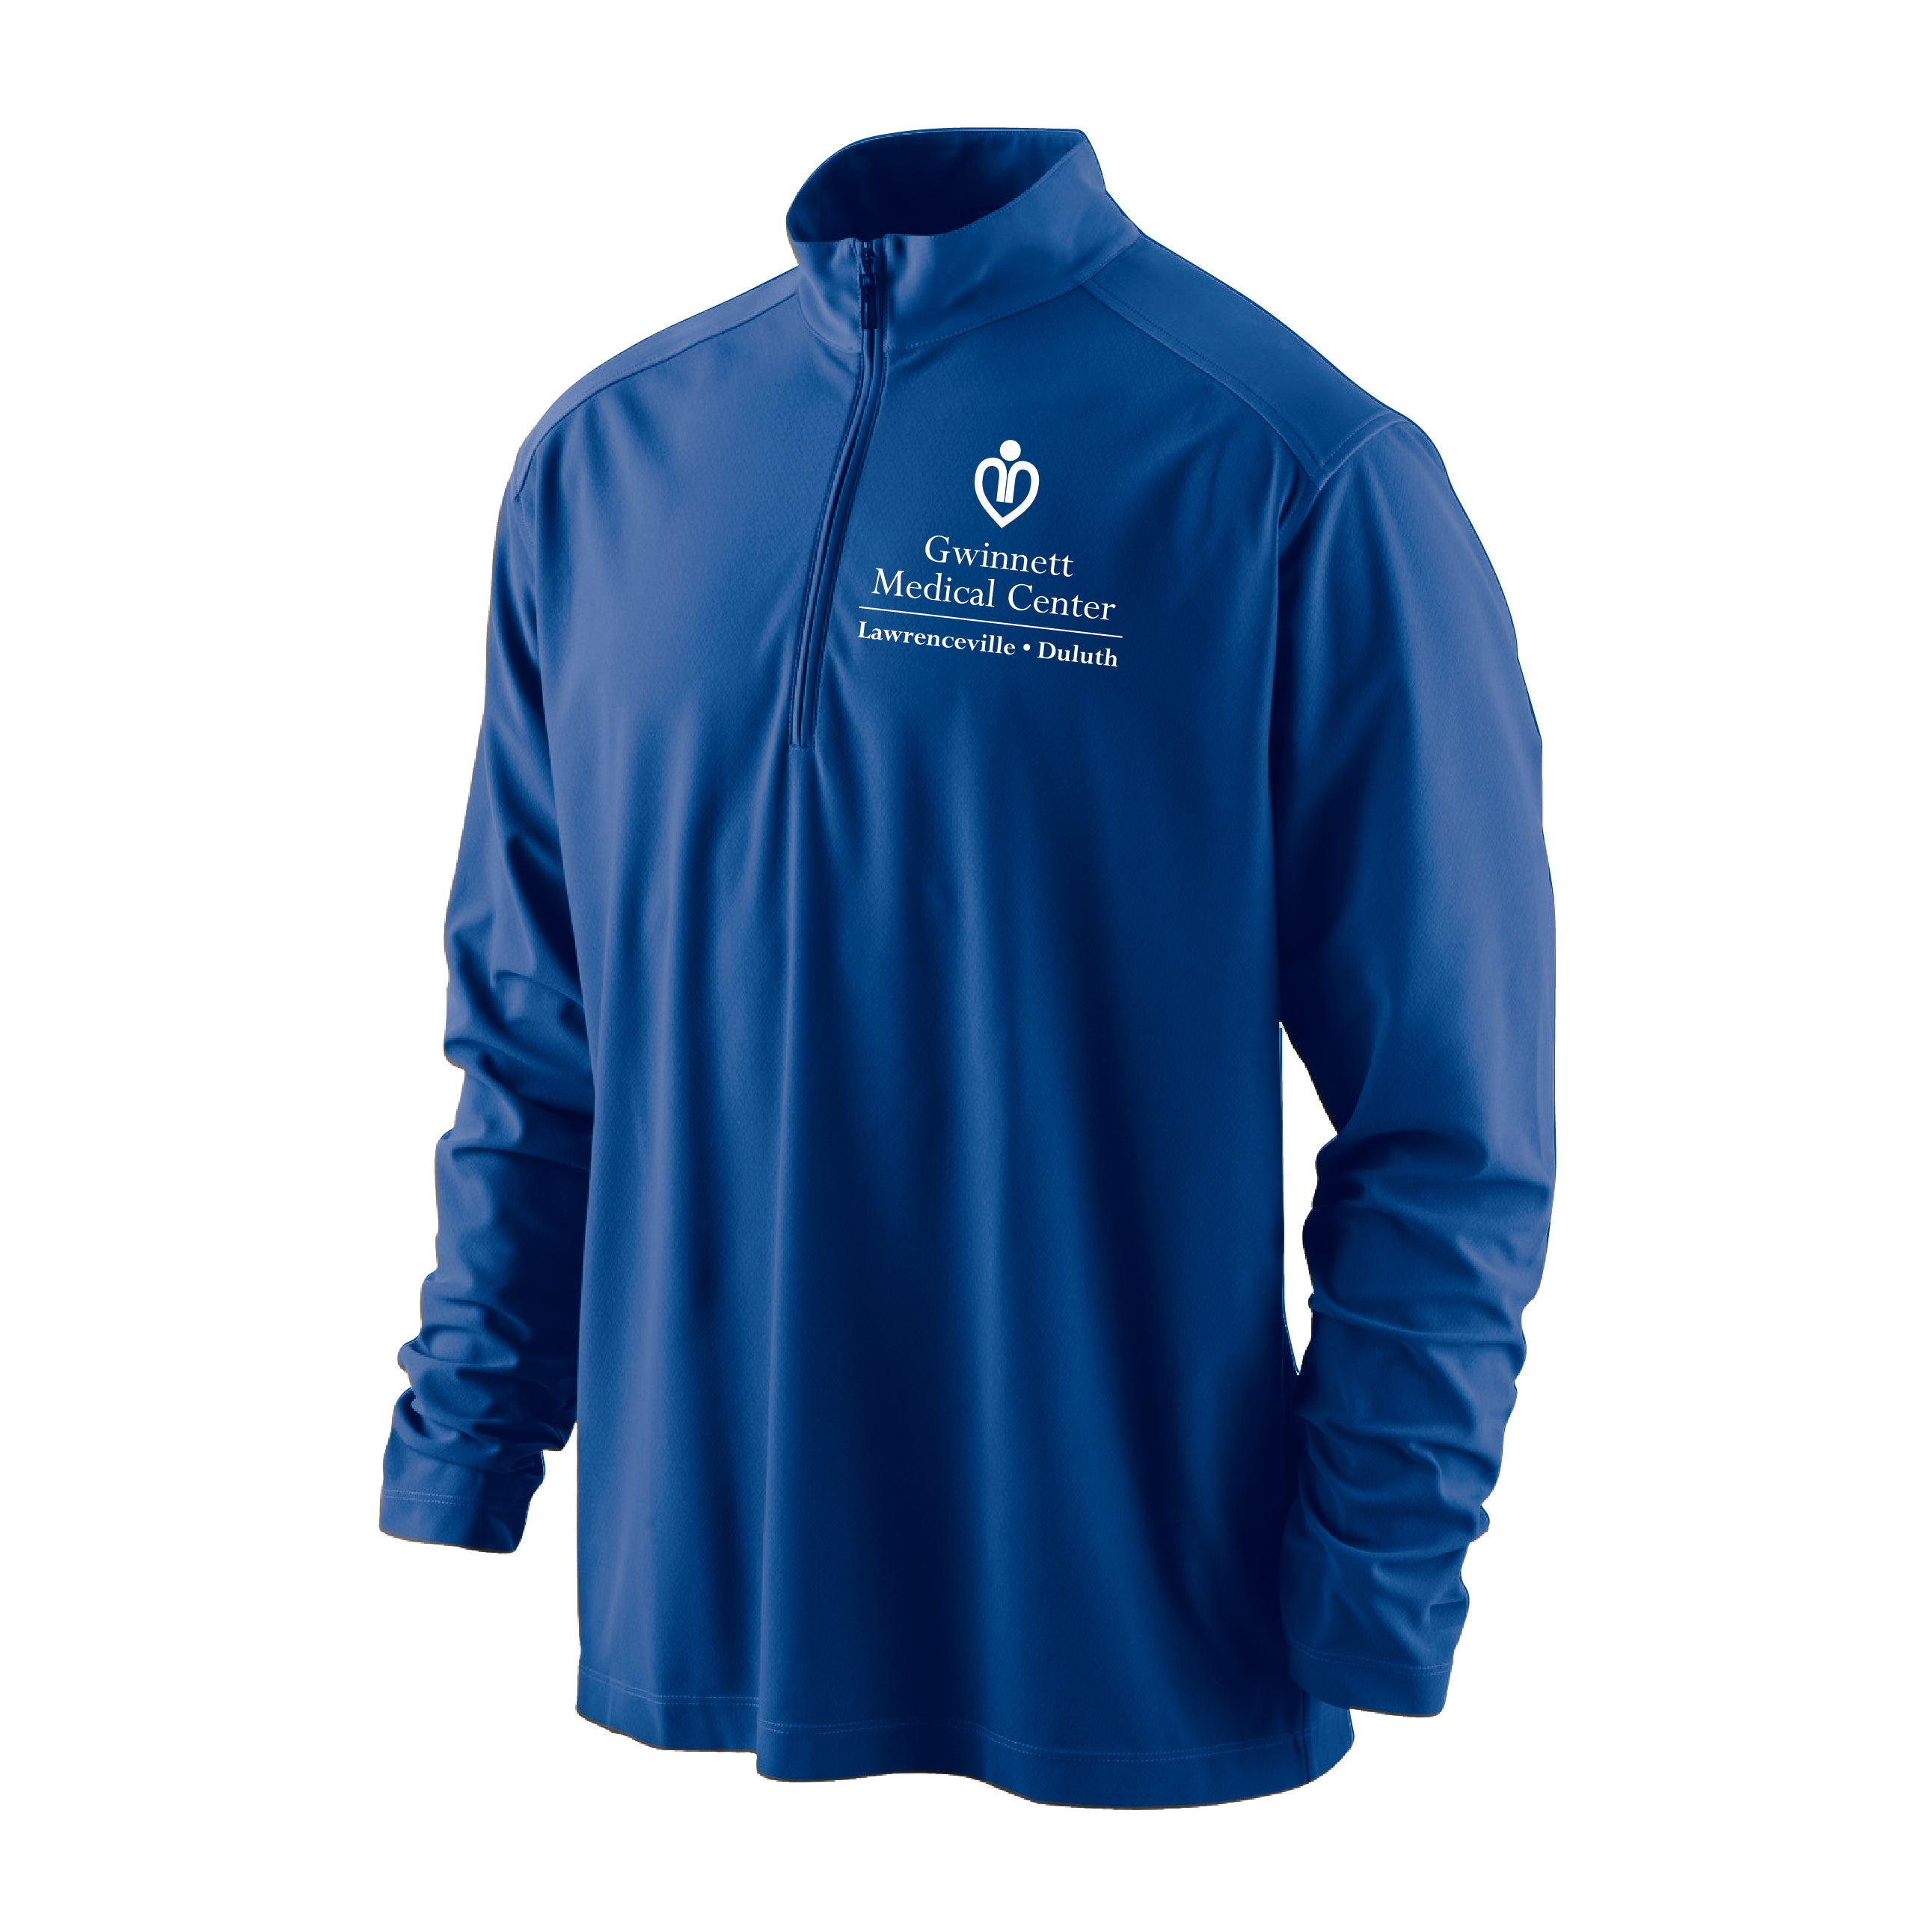 Gwinnett Medical Center - 1/4 Zip Pullover